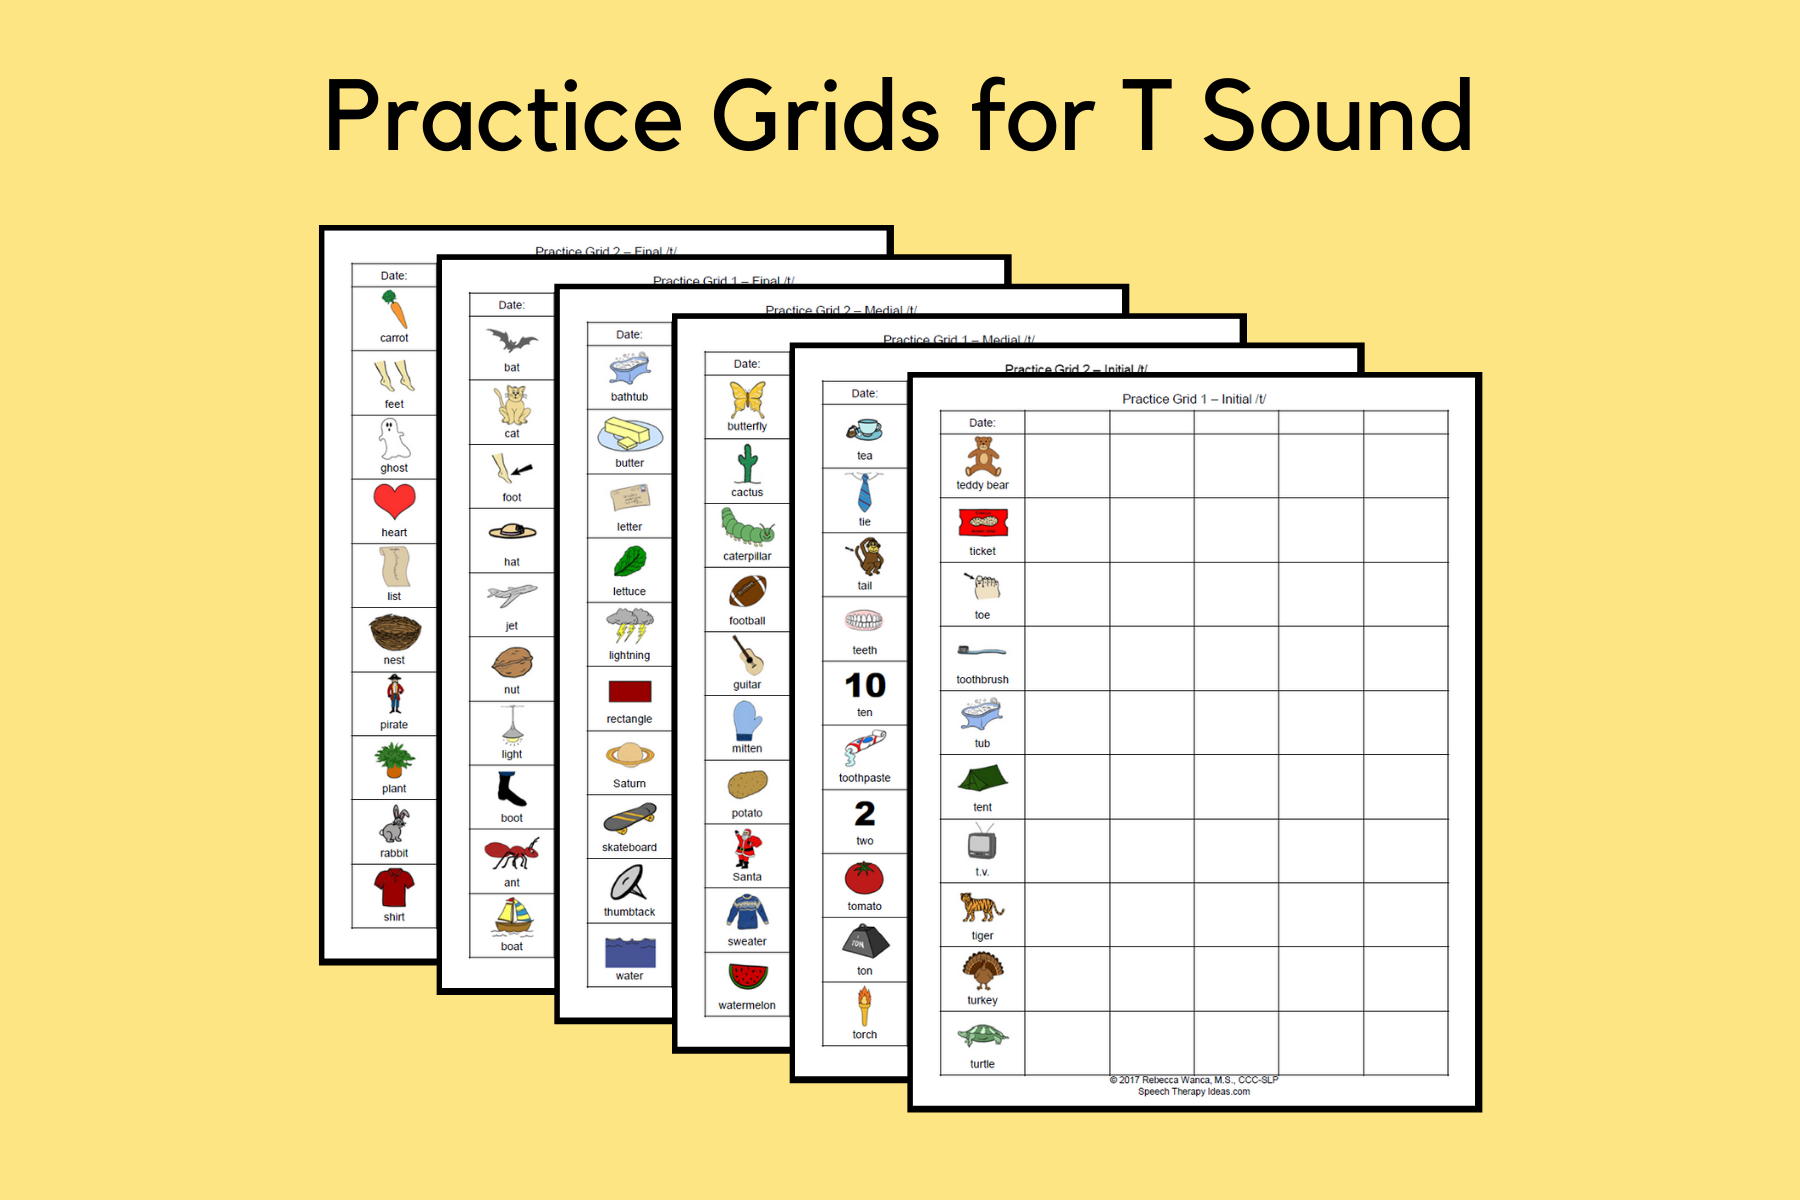 Practice Grids for T Sound